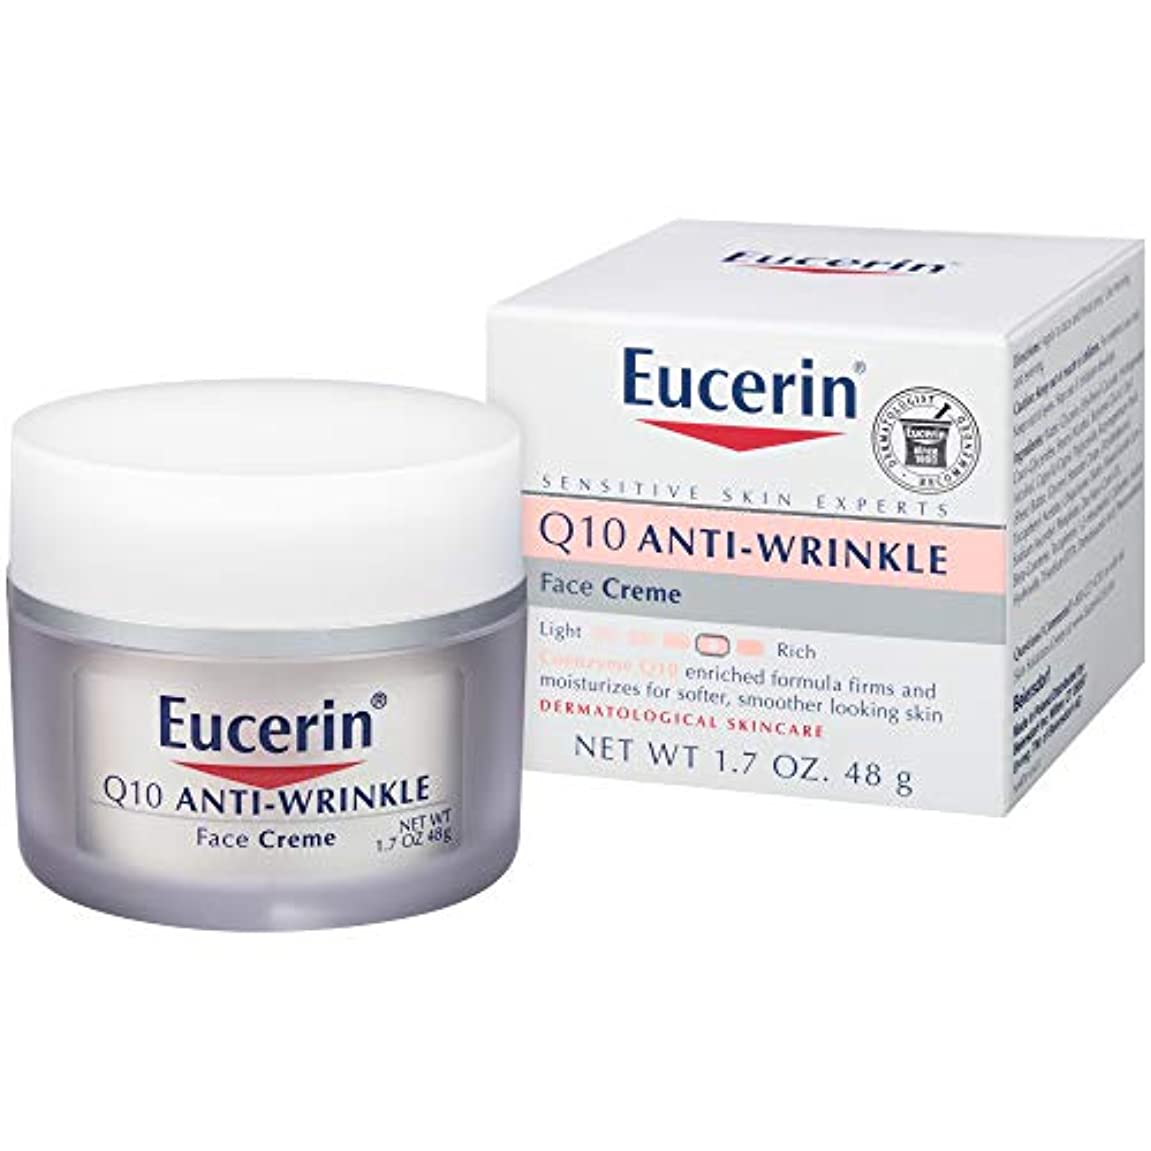 上にエレクトロニック十億Eucerin Sensitive Facial Skin Q10 Anti-Wrinkle Sensitive Skin Creme 48g (並行輸入品)